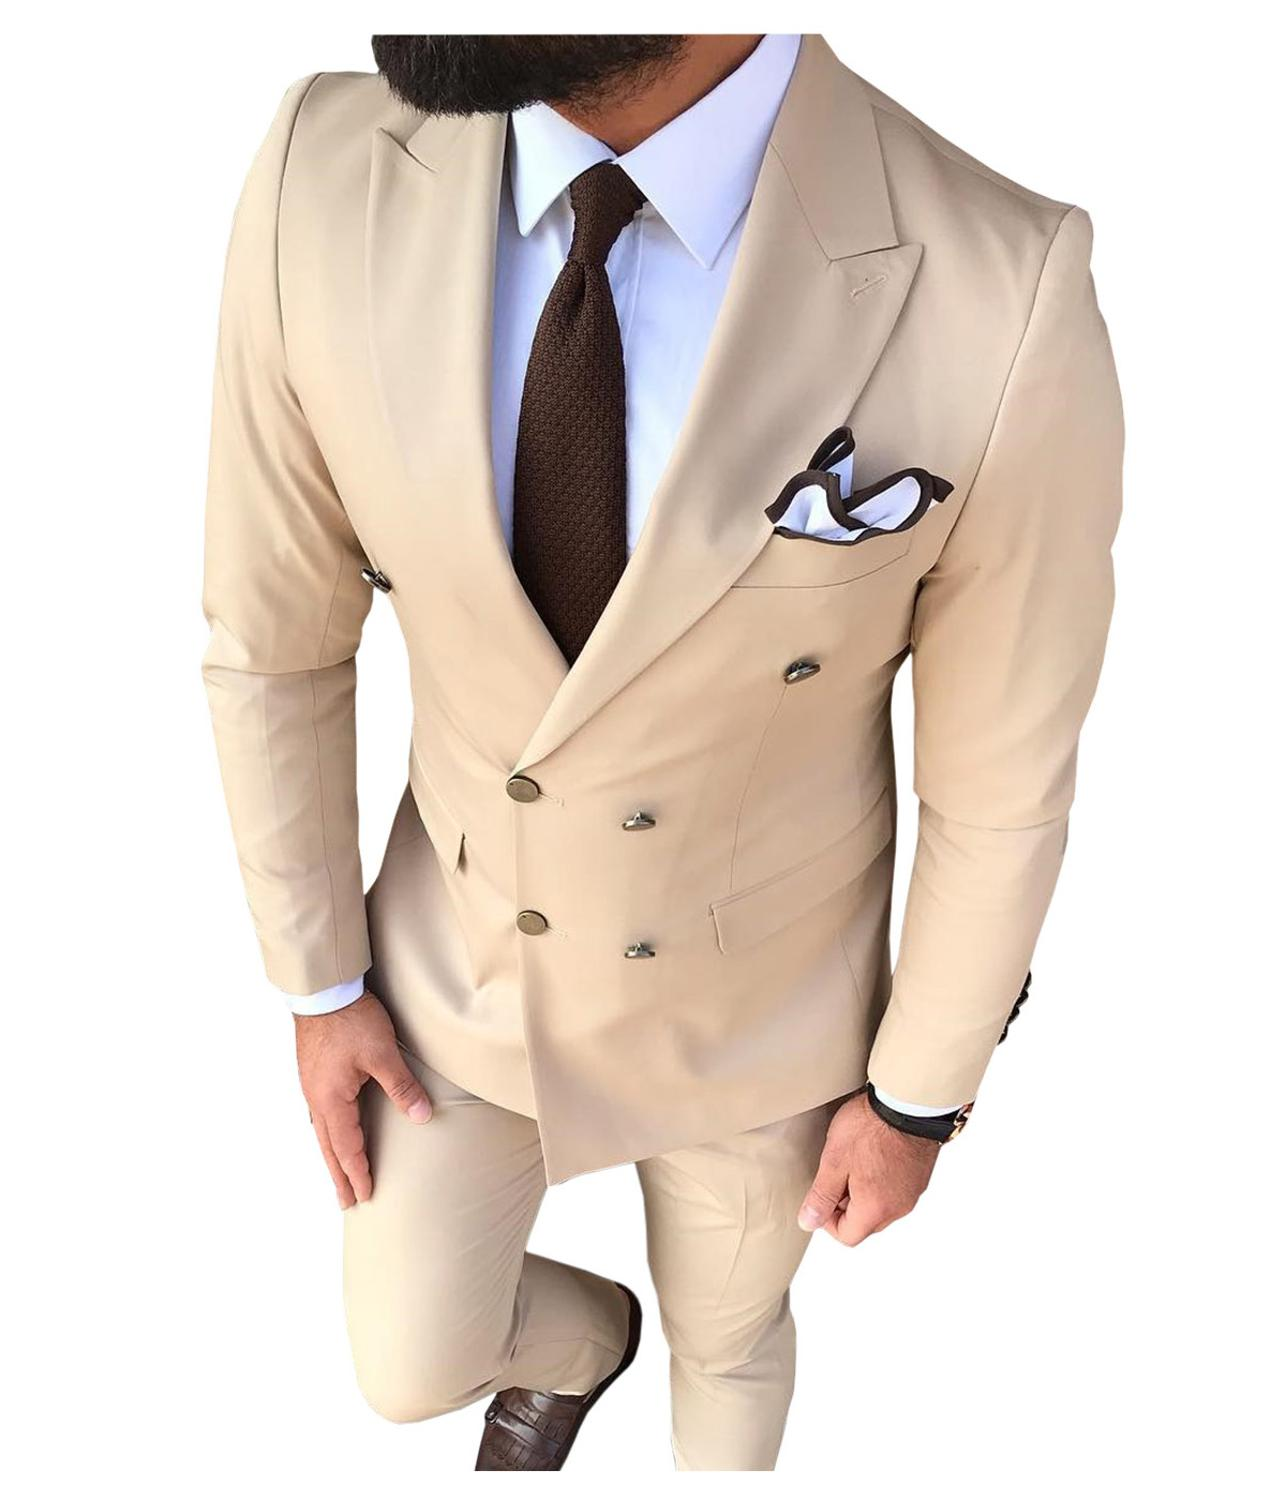 Solovedress Mens Wedding Suit Peak Lapel Double Breasted Slim Fit New Fashion Prom Wear Party Skinny Cheap Costume 3 Piece M2